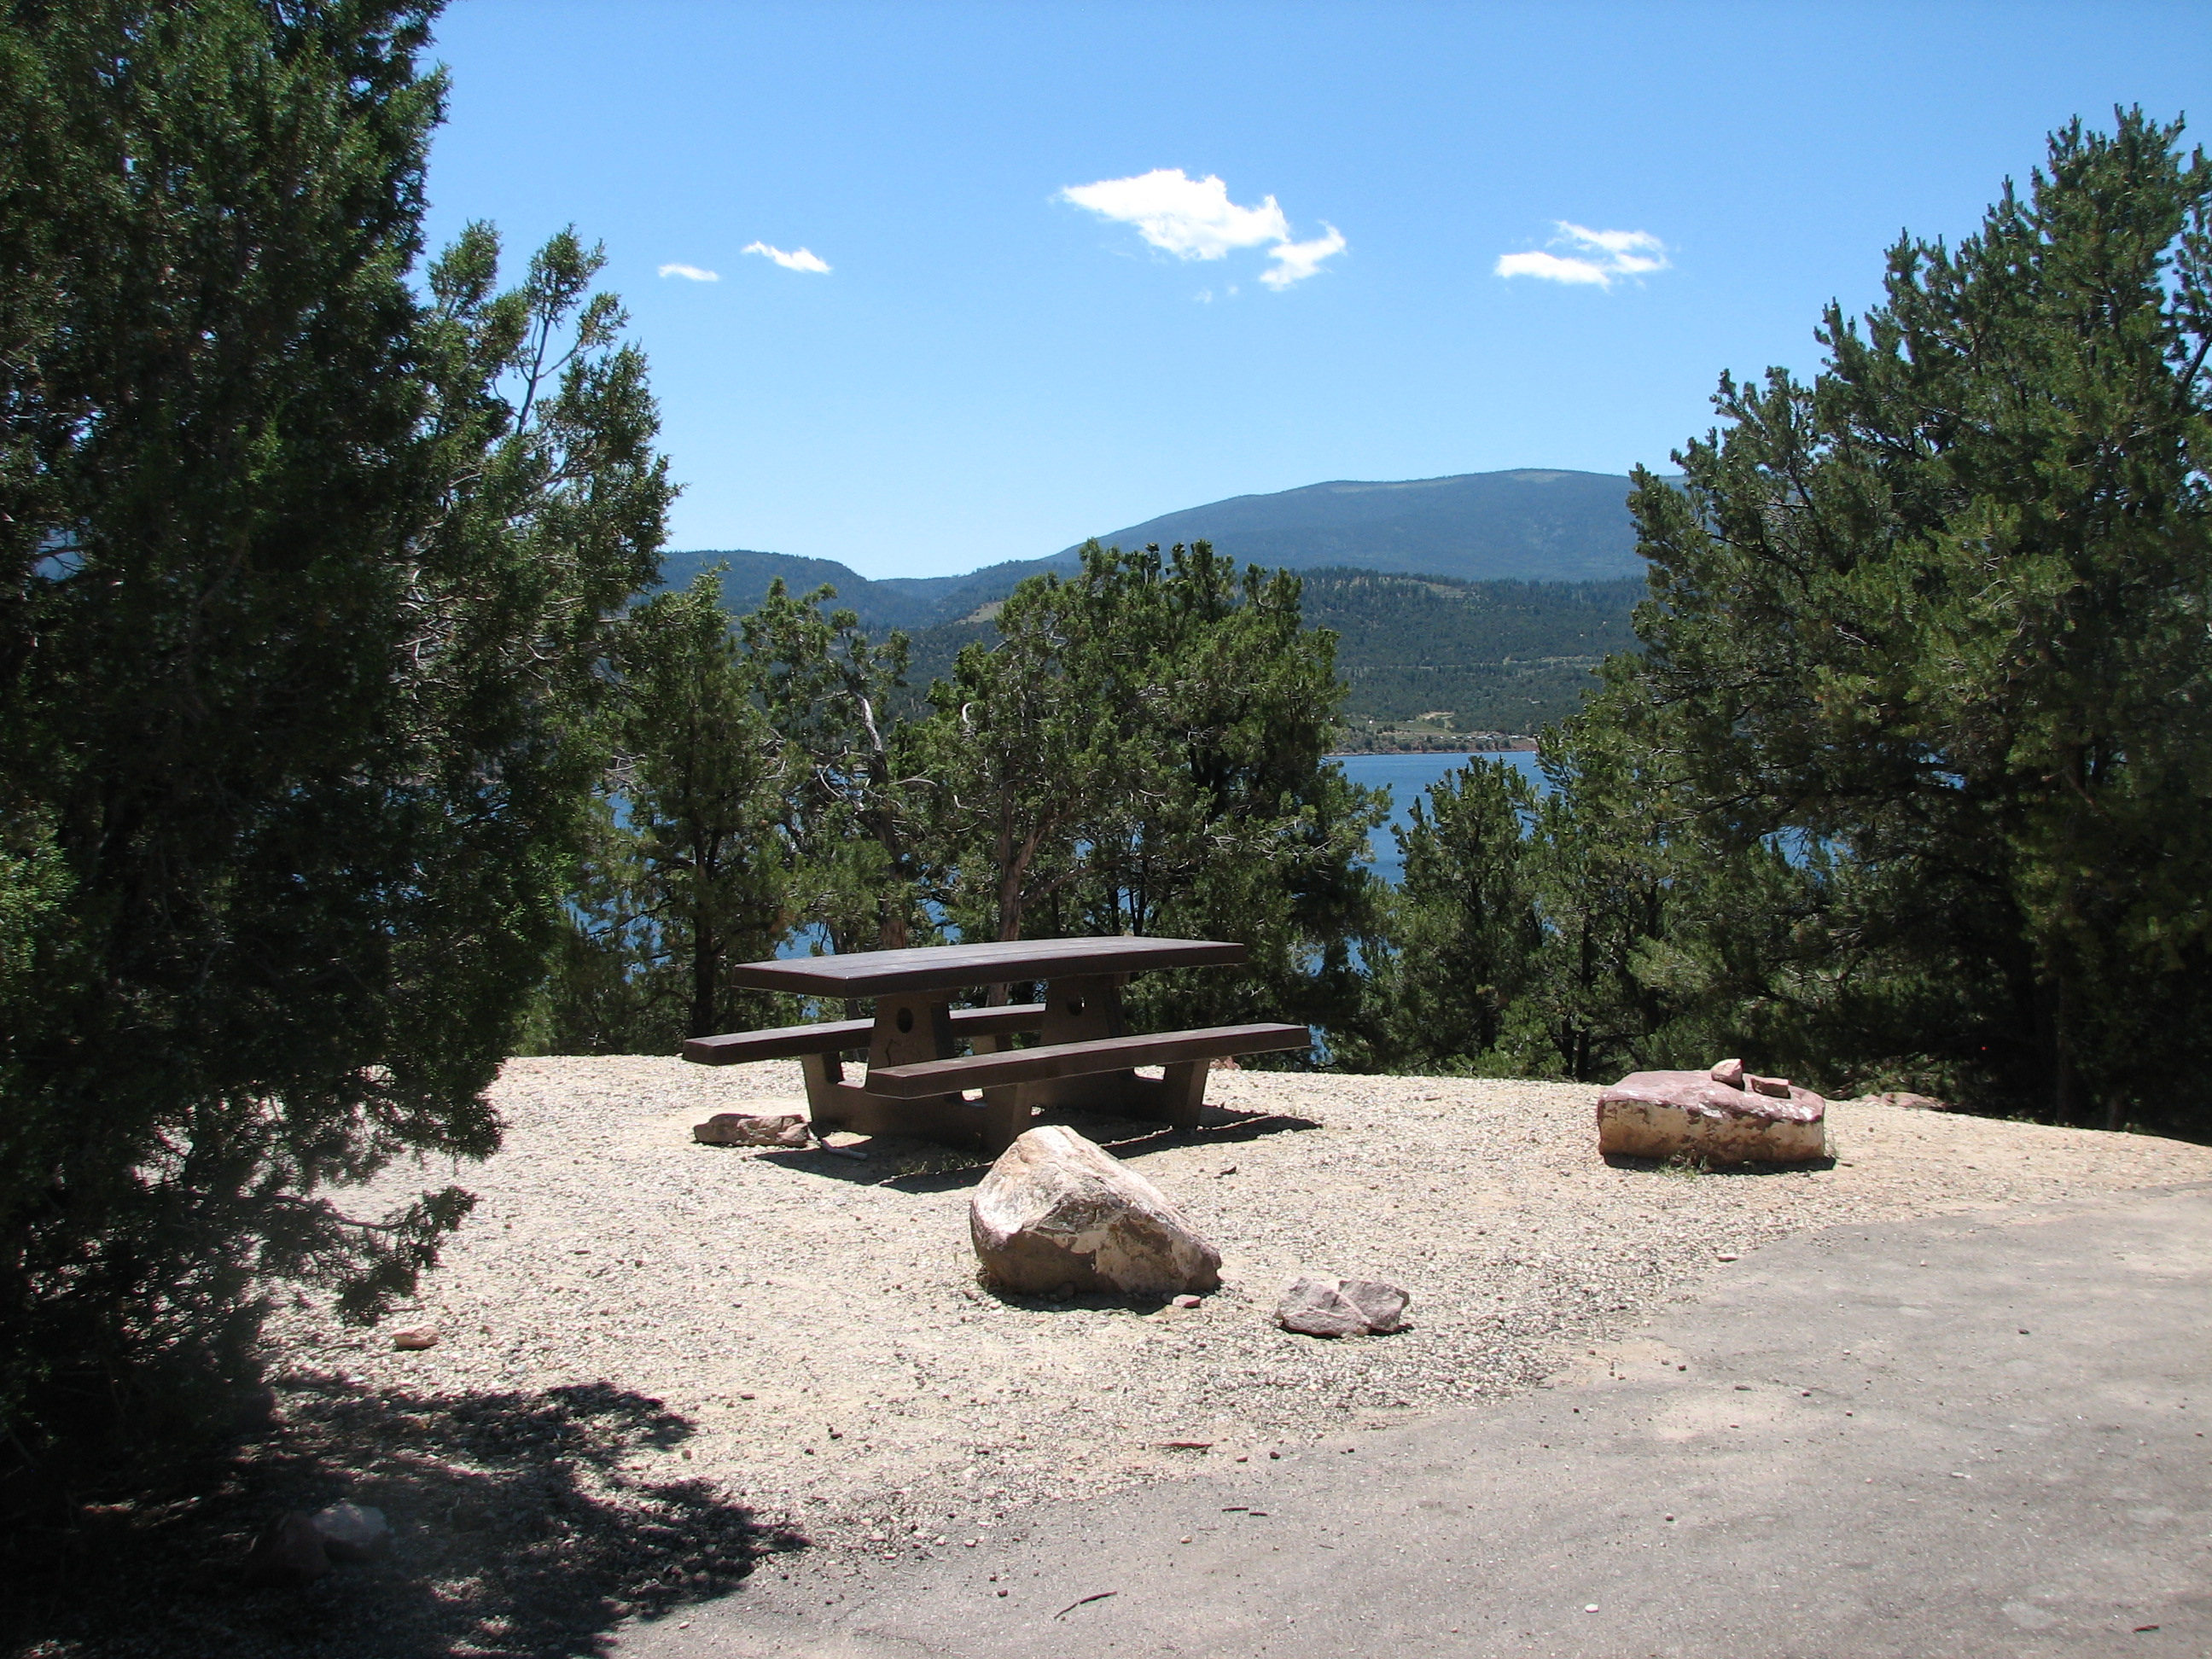 Photo of a site at the Mustang Ridge Campground.